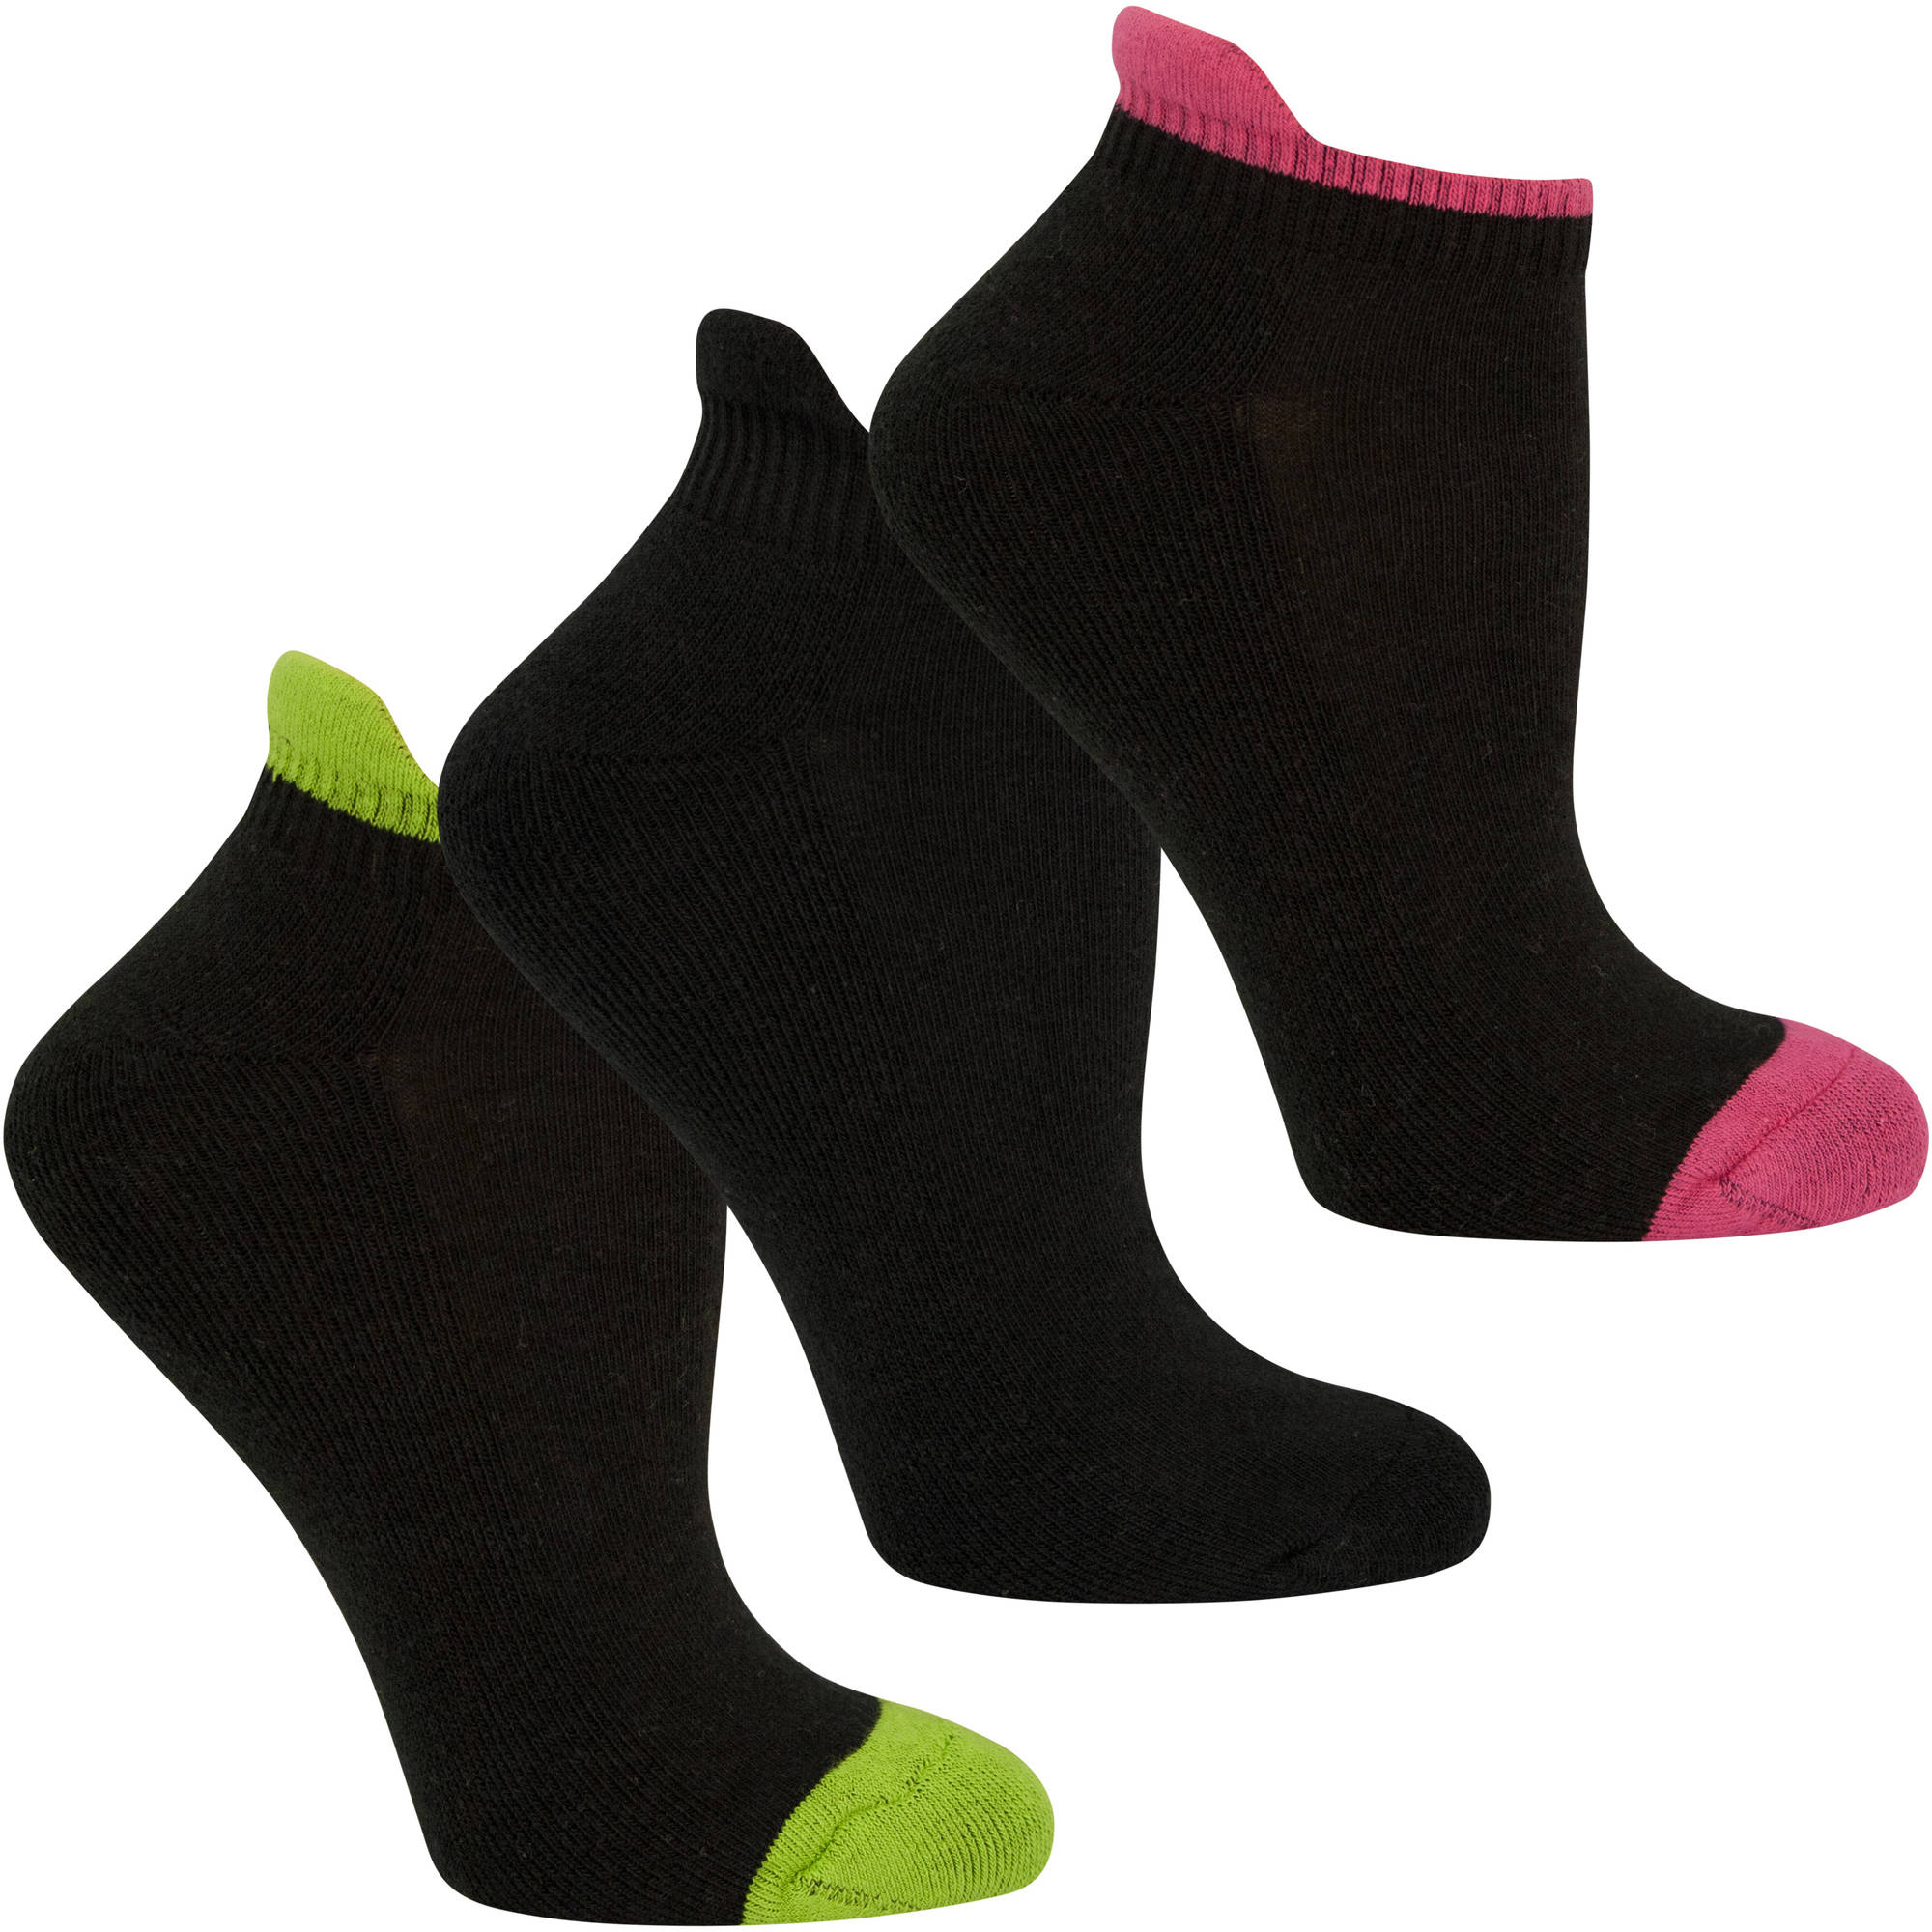 Fruit of the Loom Womens Cotton Stretch Low Cut Tab Socks - 3 Pack